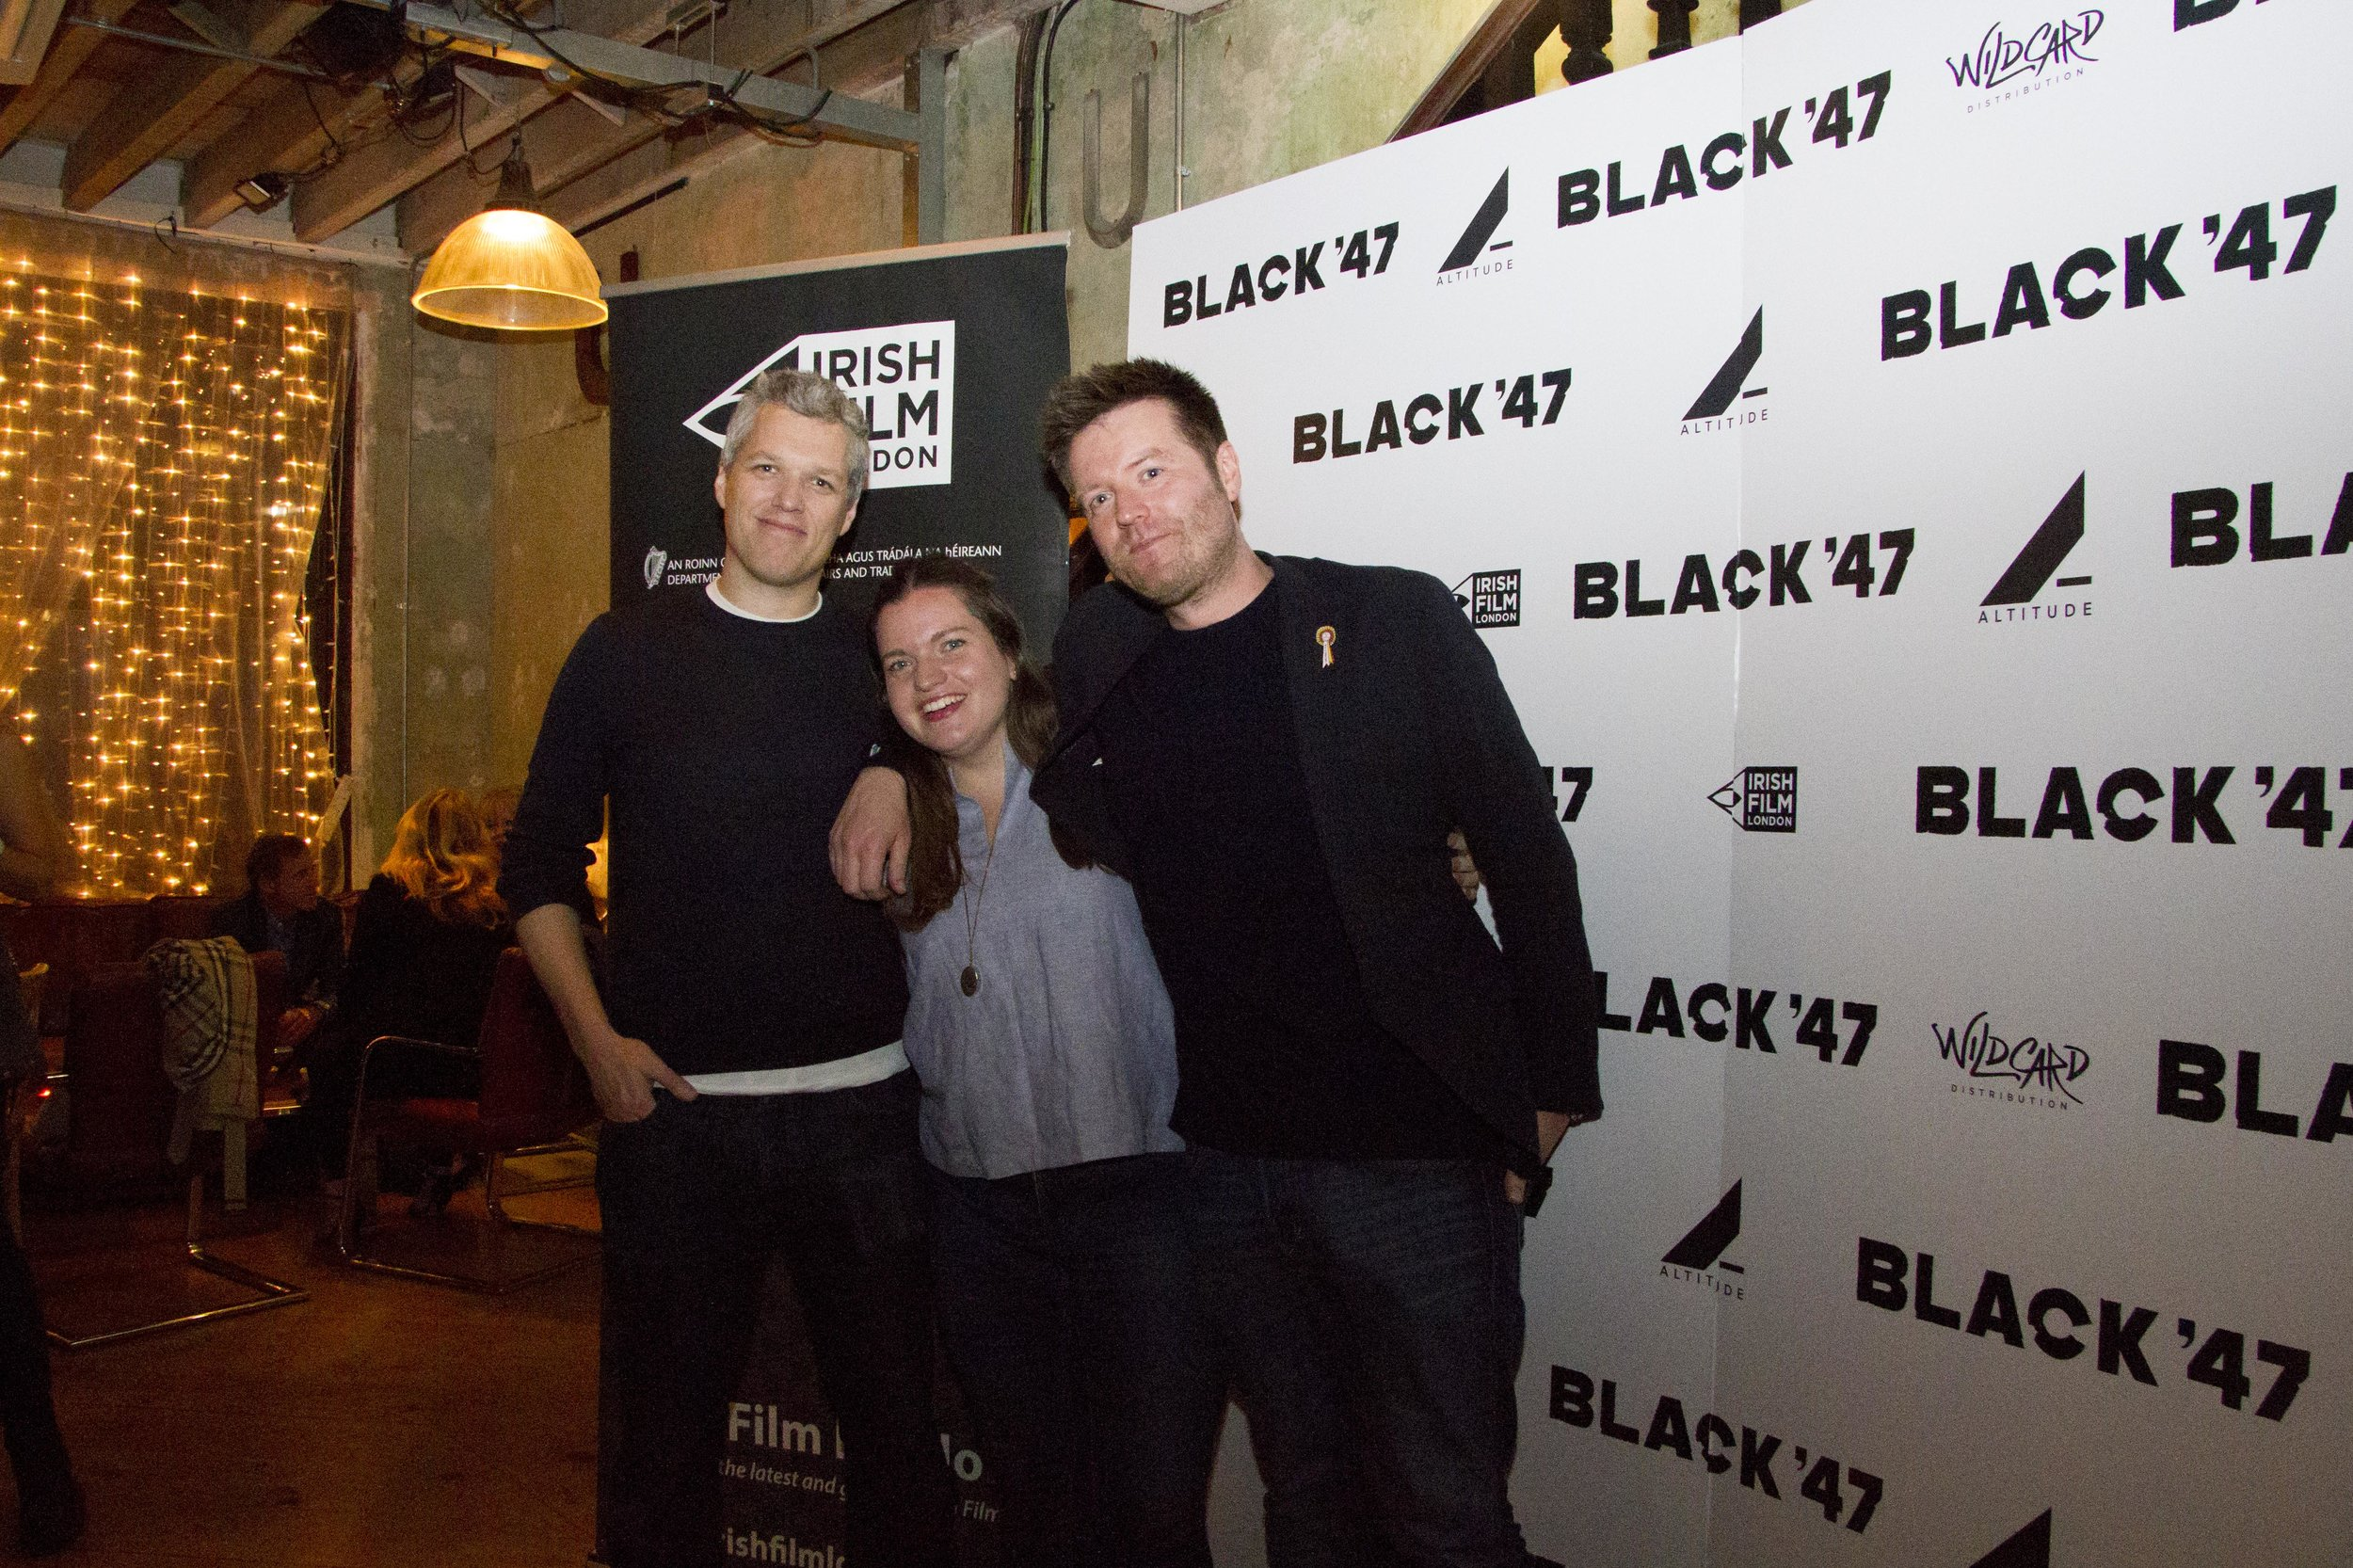 Black 47 London Premiere 2018 Photos courtesy of Noel Mullen Irish Film London 56 Mark Jones and Sile Culley from Altitude and Johnny Carr from Vue Cinemas.jpg